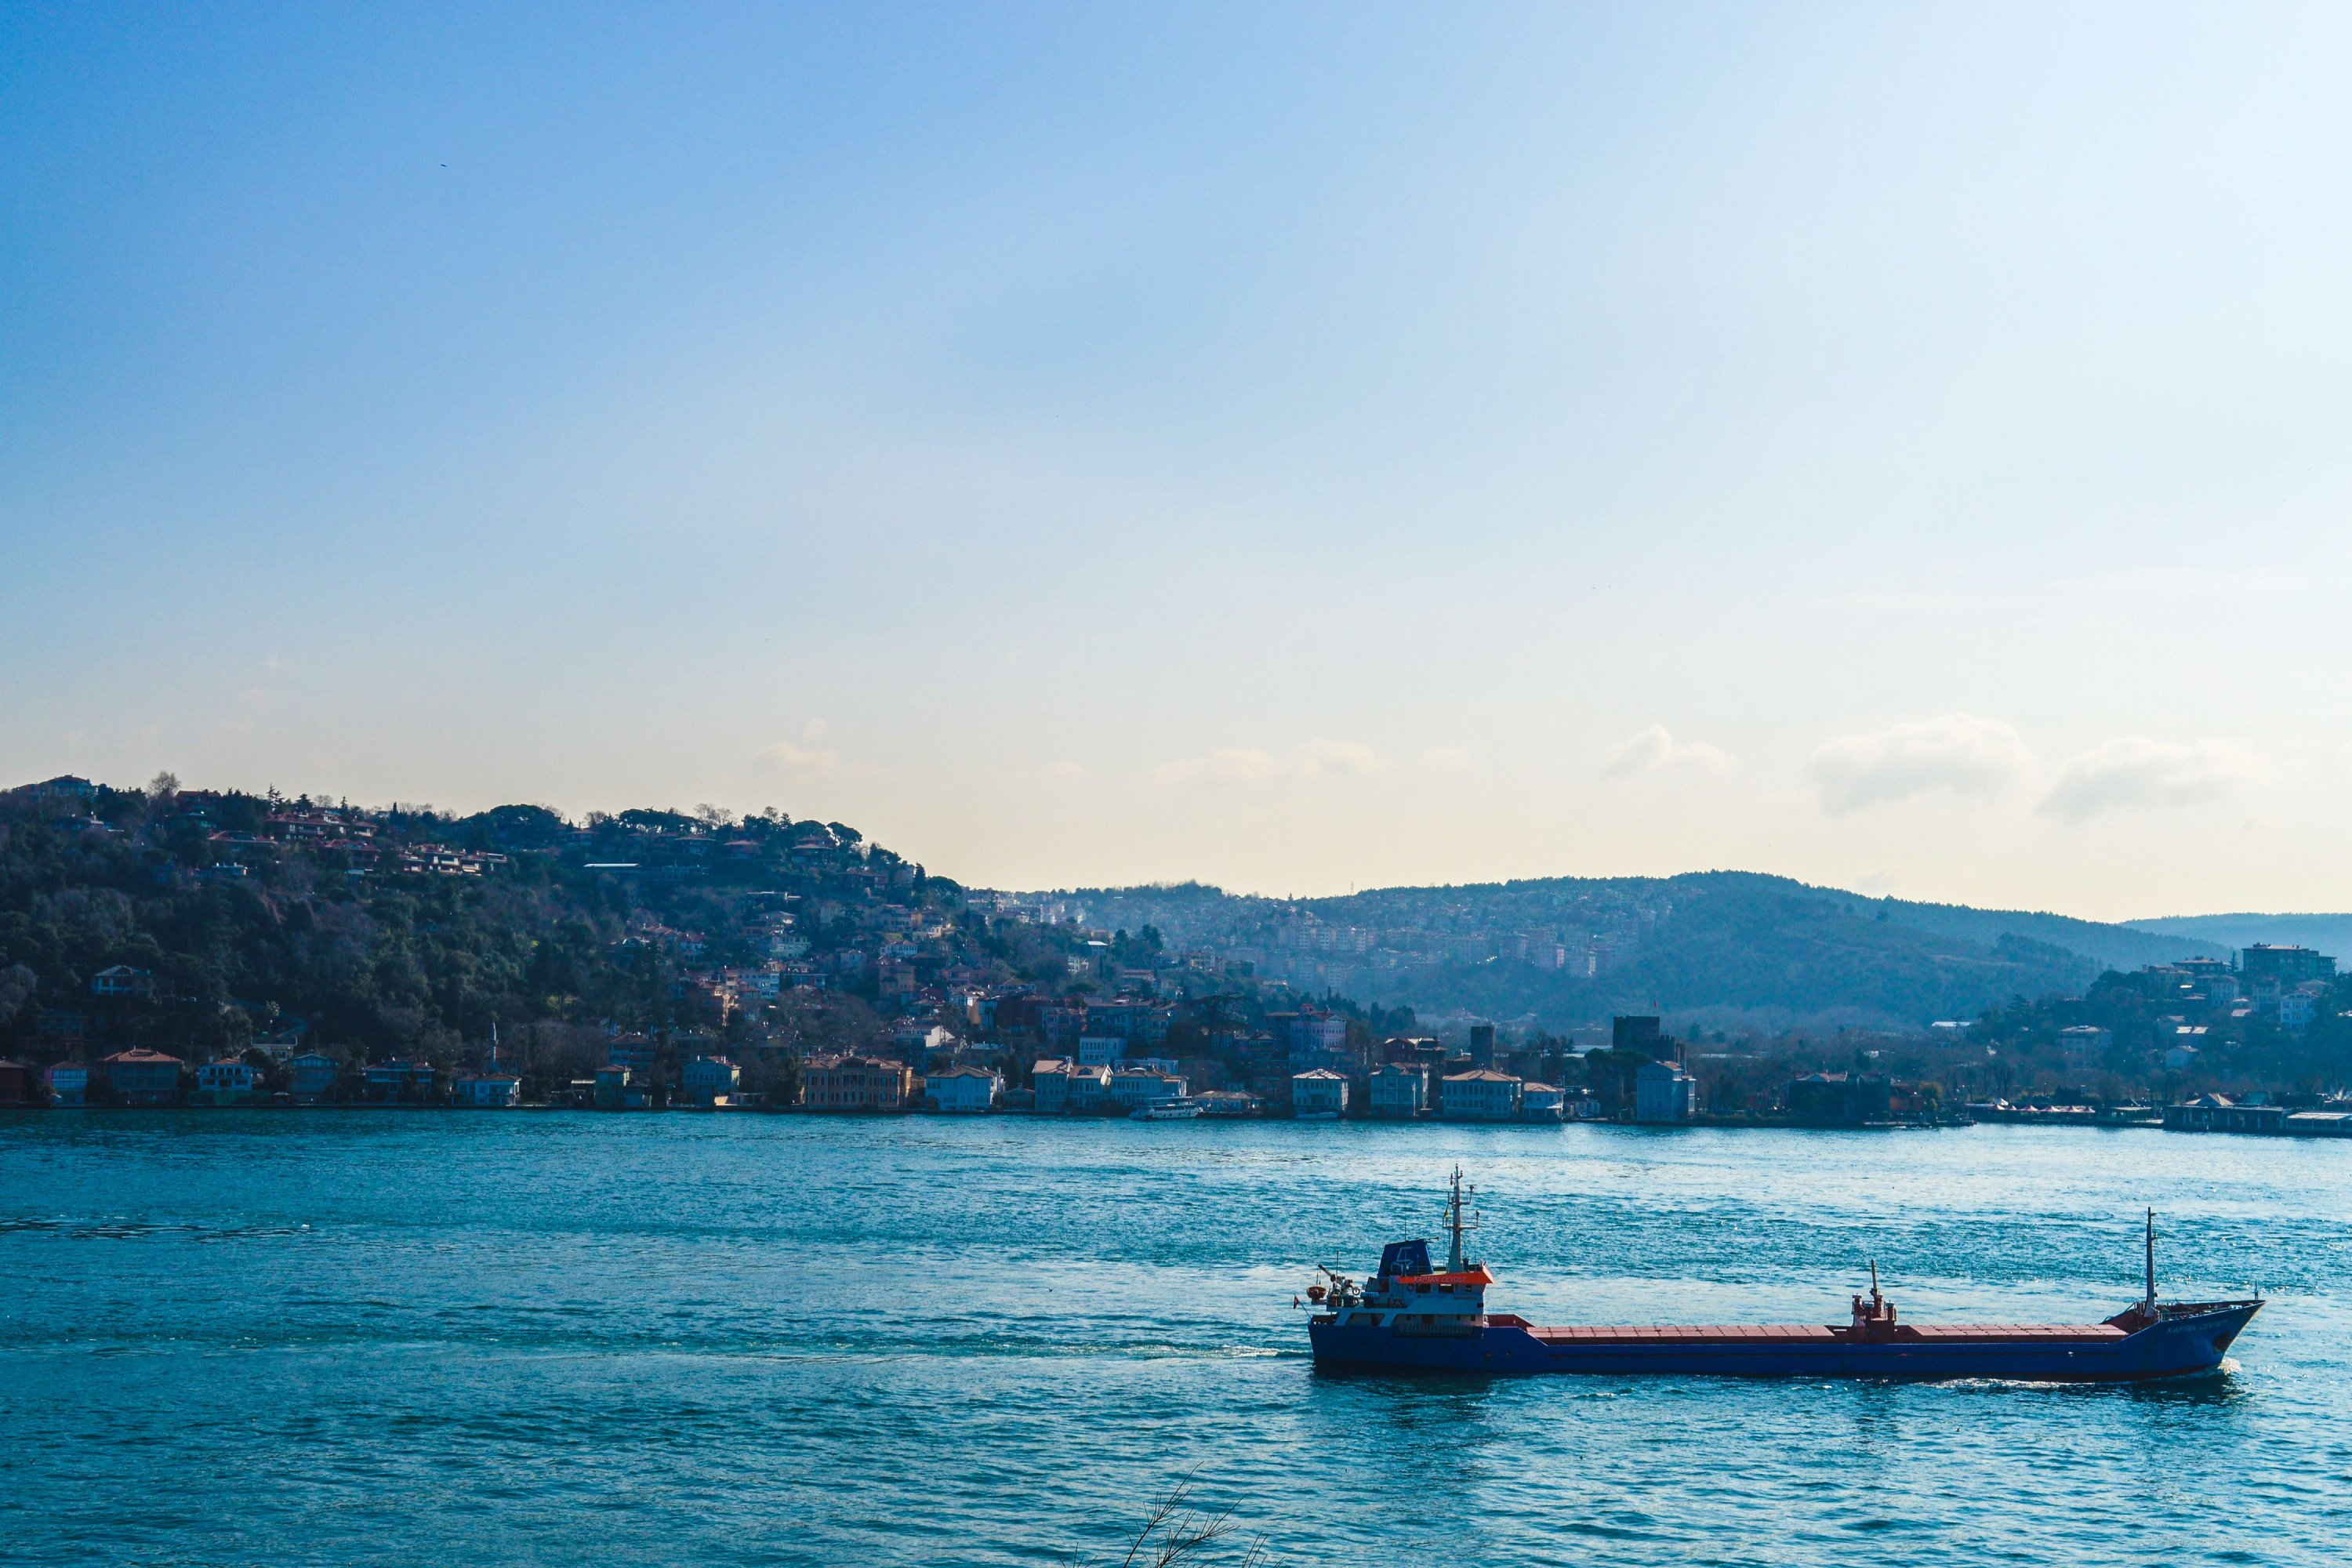 A cargo vessel passes through the Bosporus, Istanbul, Turkey, March 3, 2021. (Photo by Getty Images)